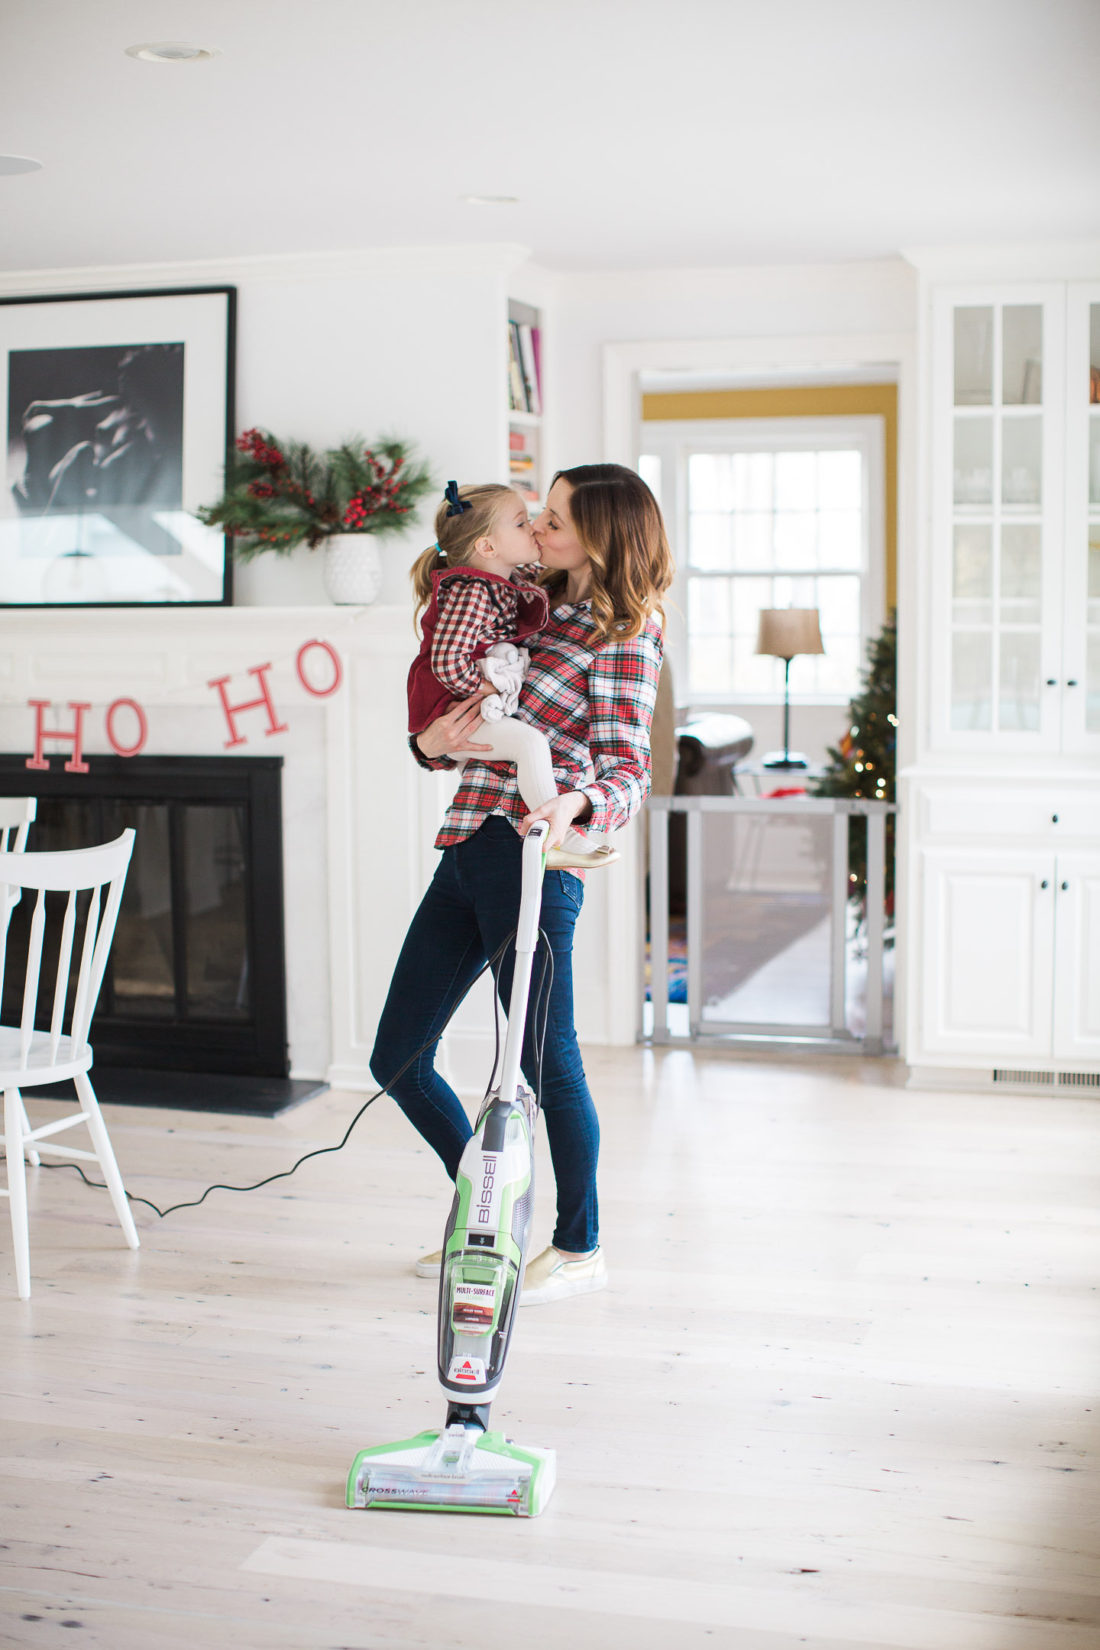 Eva Amurri Martino of lifestyle and motherhood blog Happily Eva After holds her toddler daughter Marlowe in her arms while she vacuums her home and prepares for holiday parties